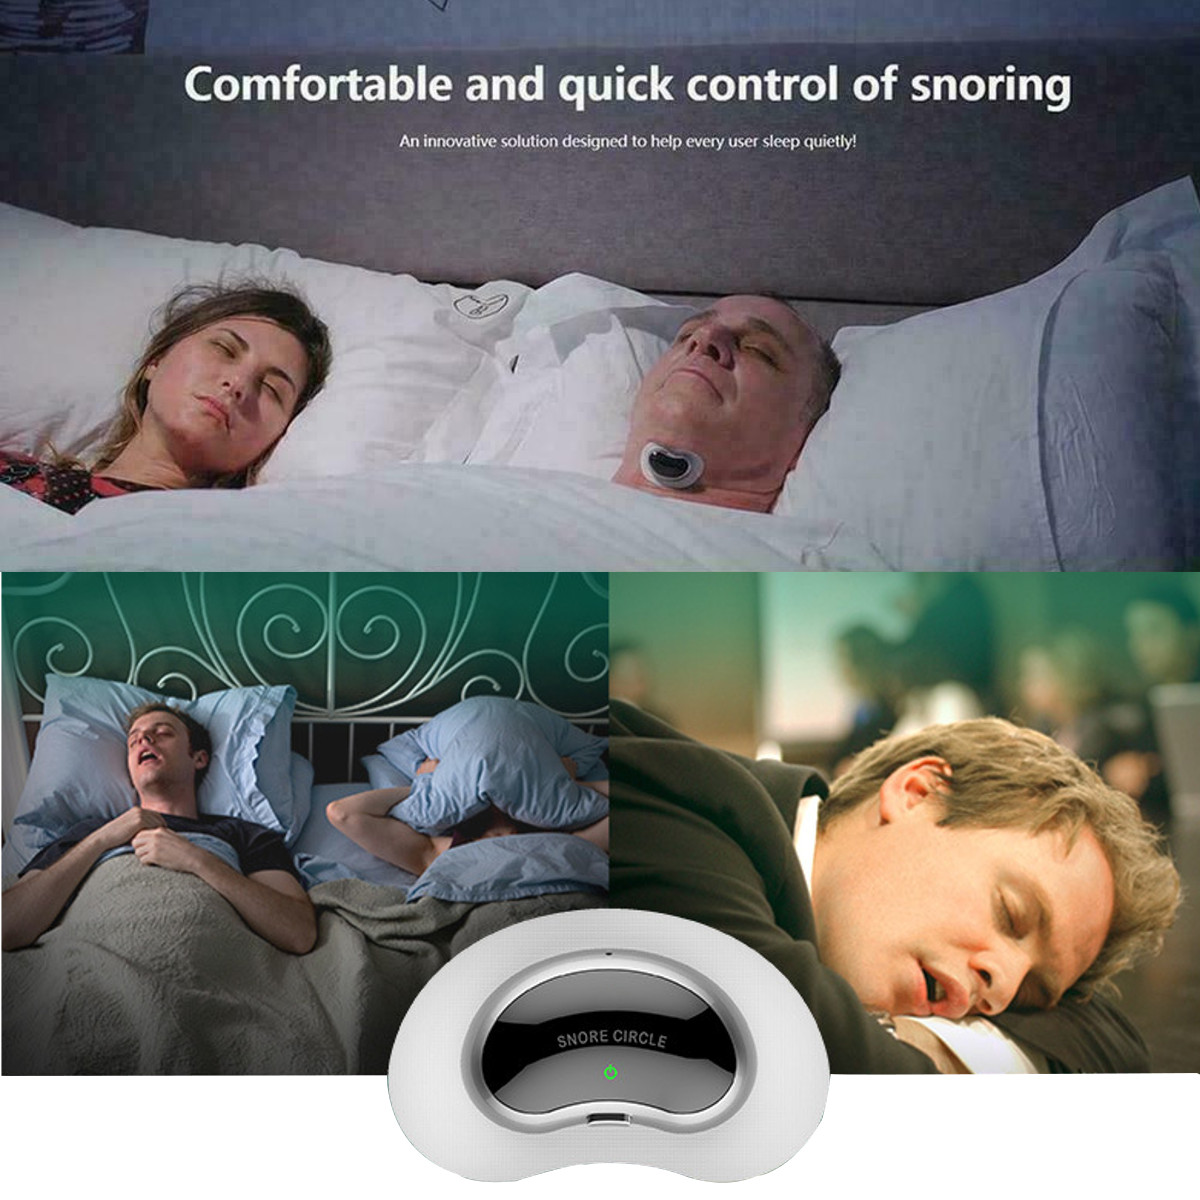 Novo inteligente ronco stopper parar ressonar biosensor anti ronco sleep aid com app e monitor de sono dispositivo de ajuda cpap replacer - 3